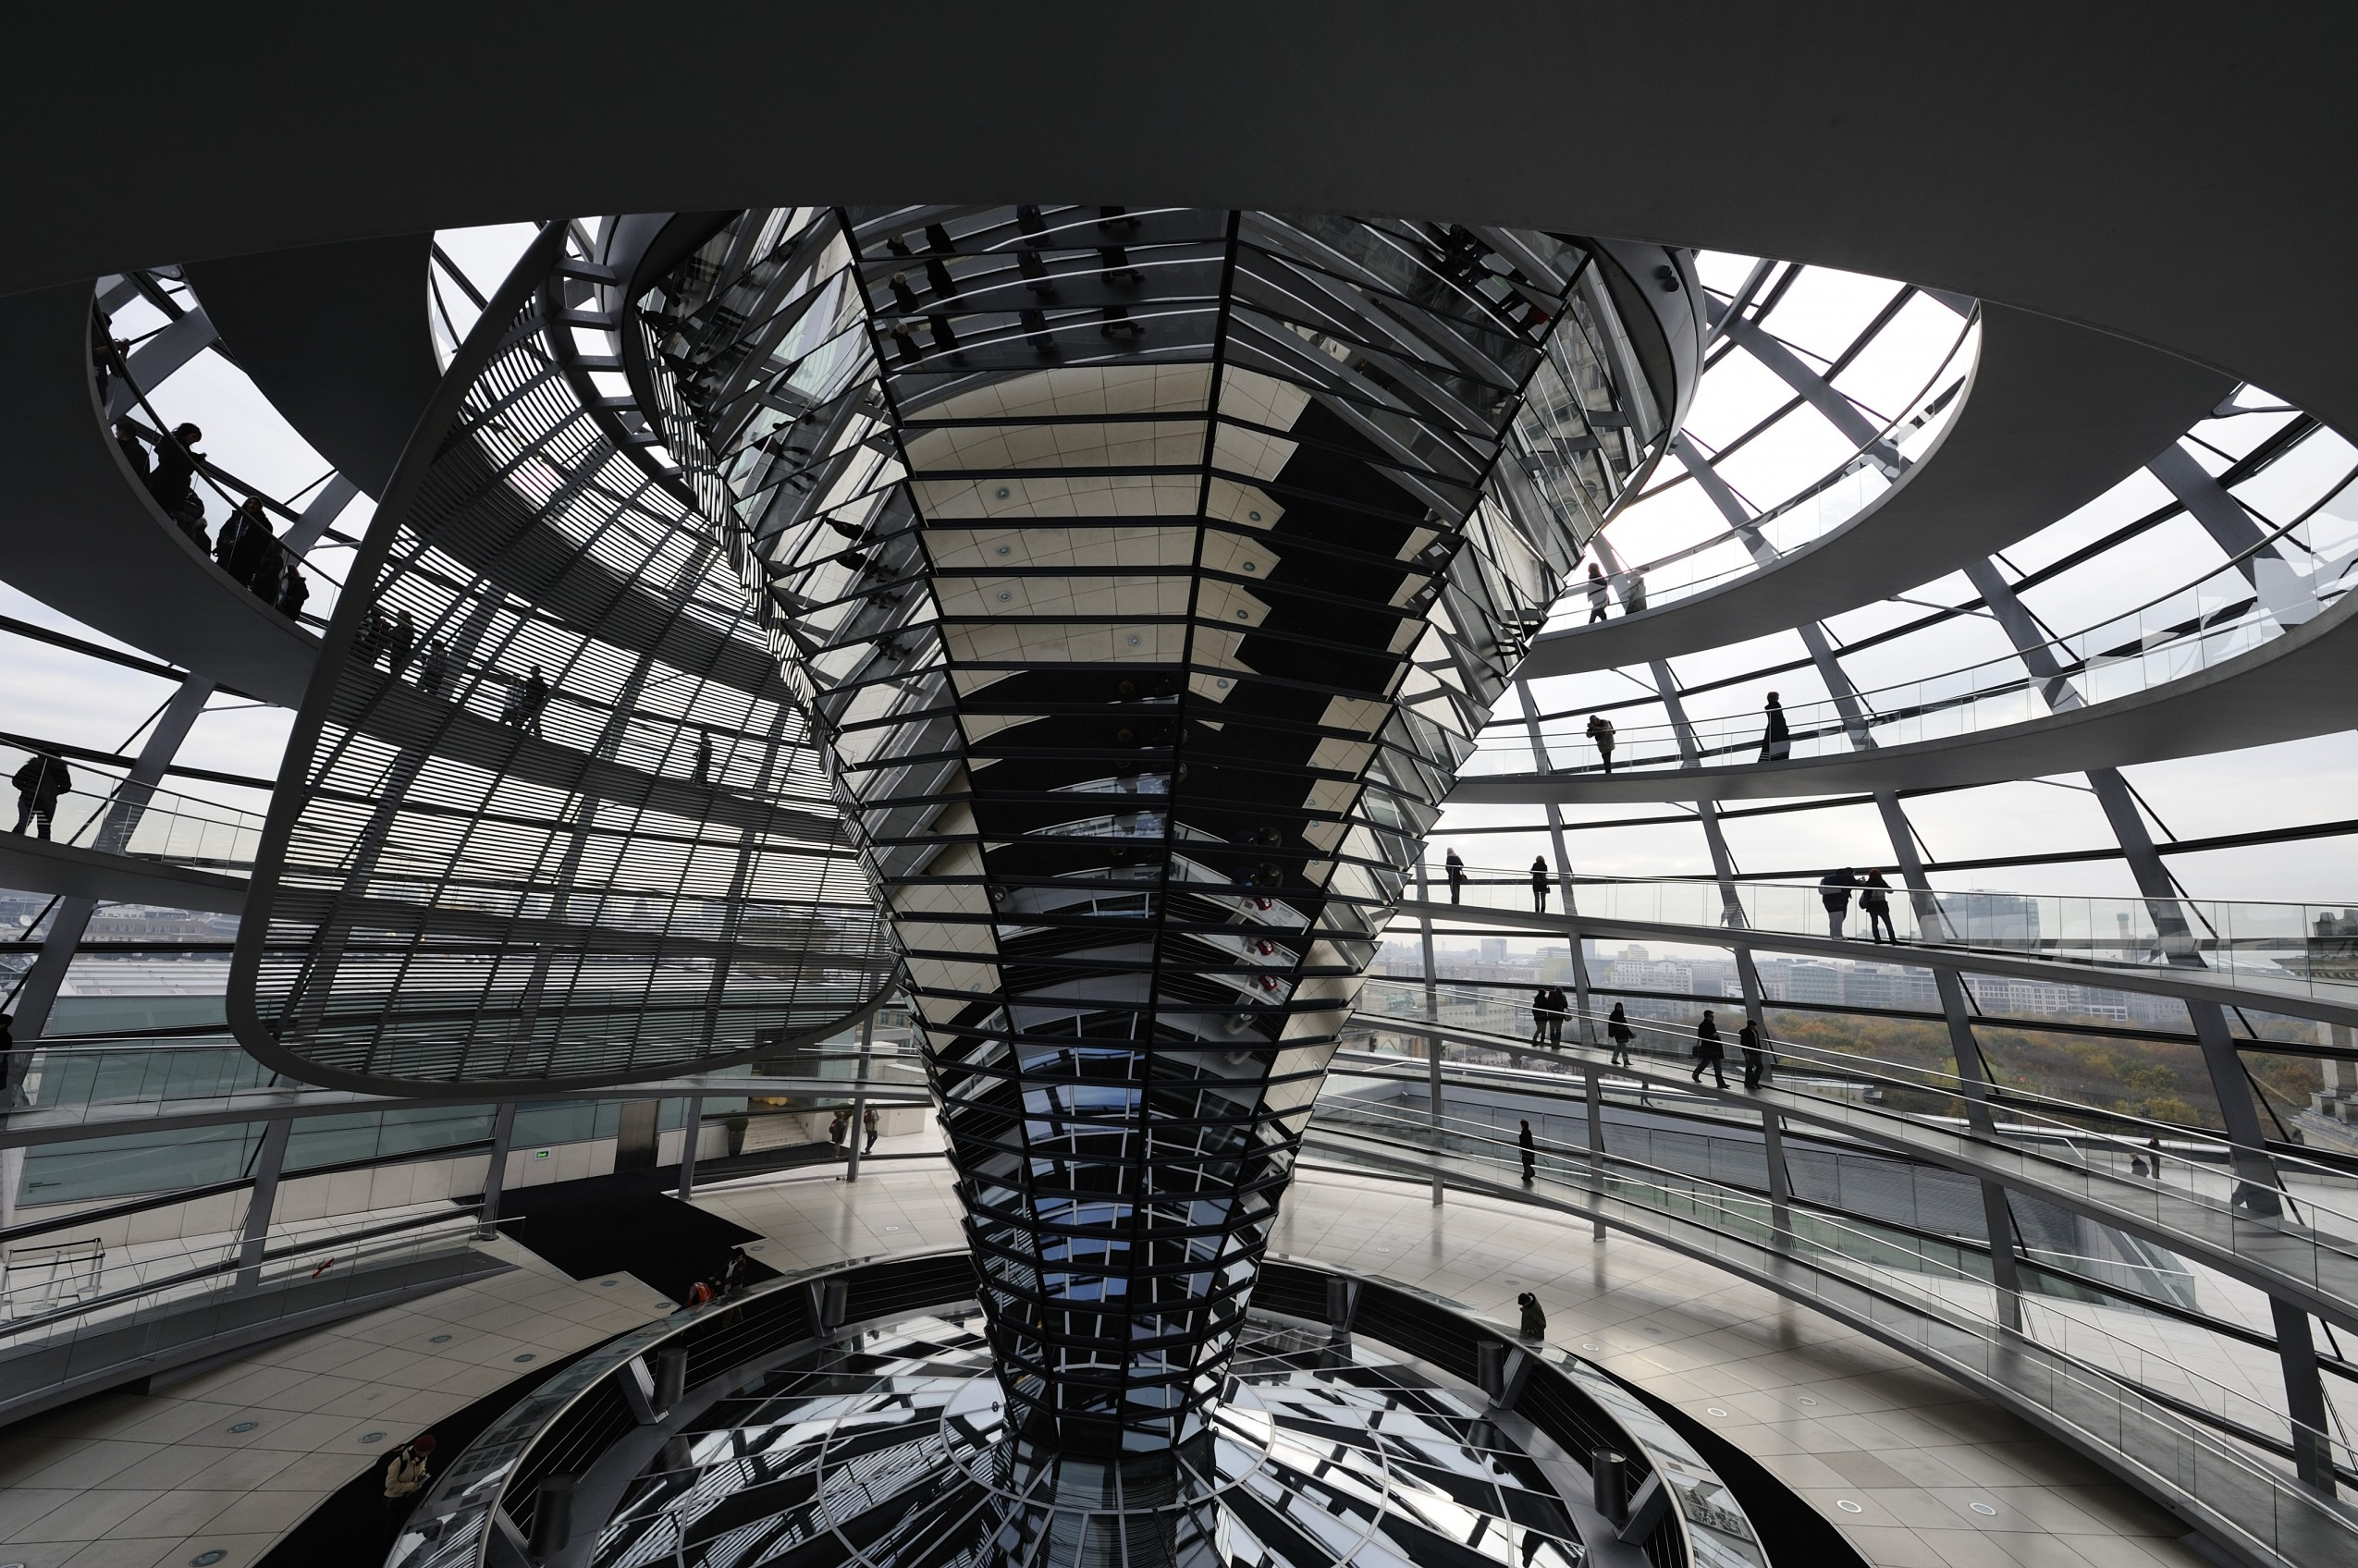 September 2009, Berlin, Germany --- Inside of the glass dome of the Reichstag, designed by architect Norman Foster. --- Image by © Frederic Soltan/Corbis